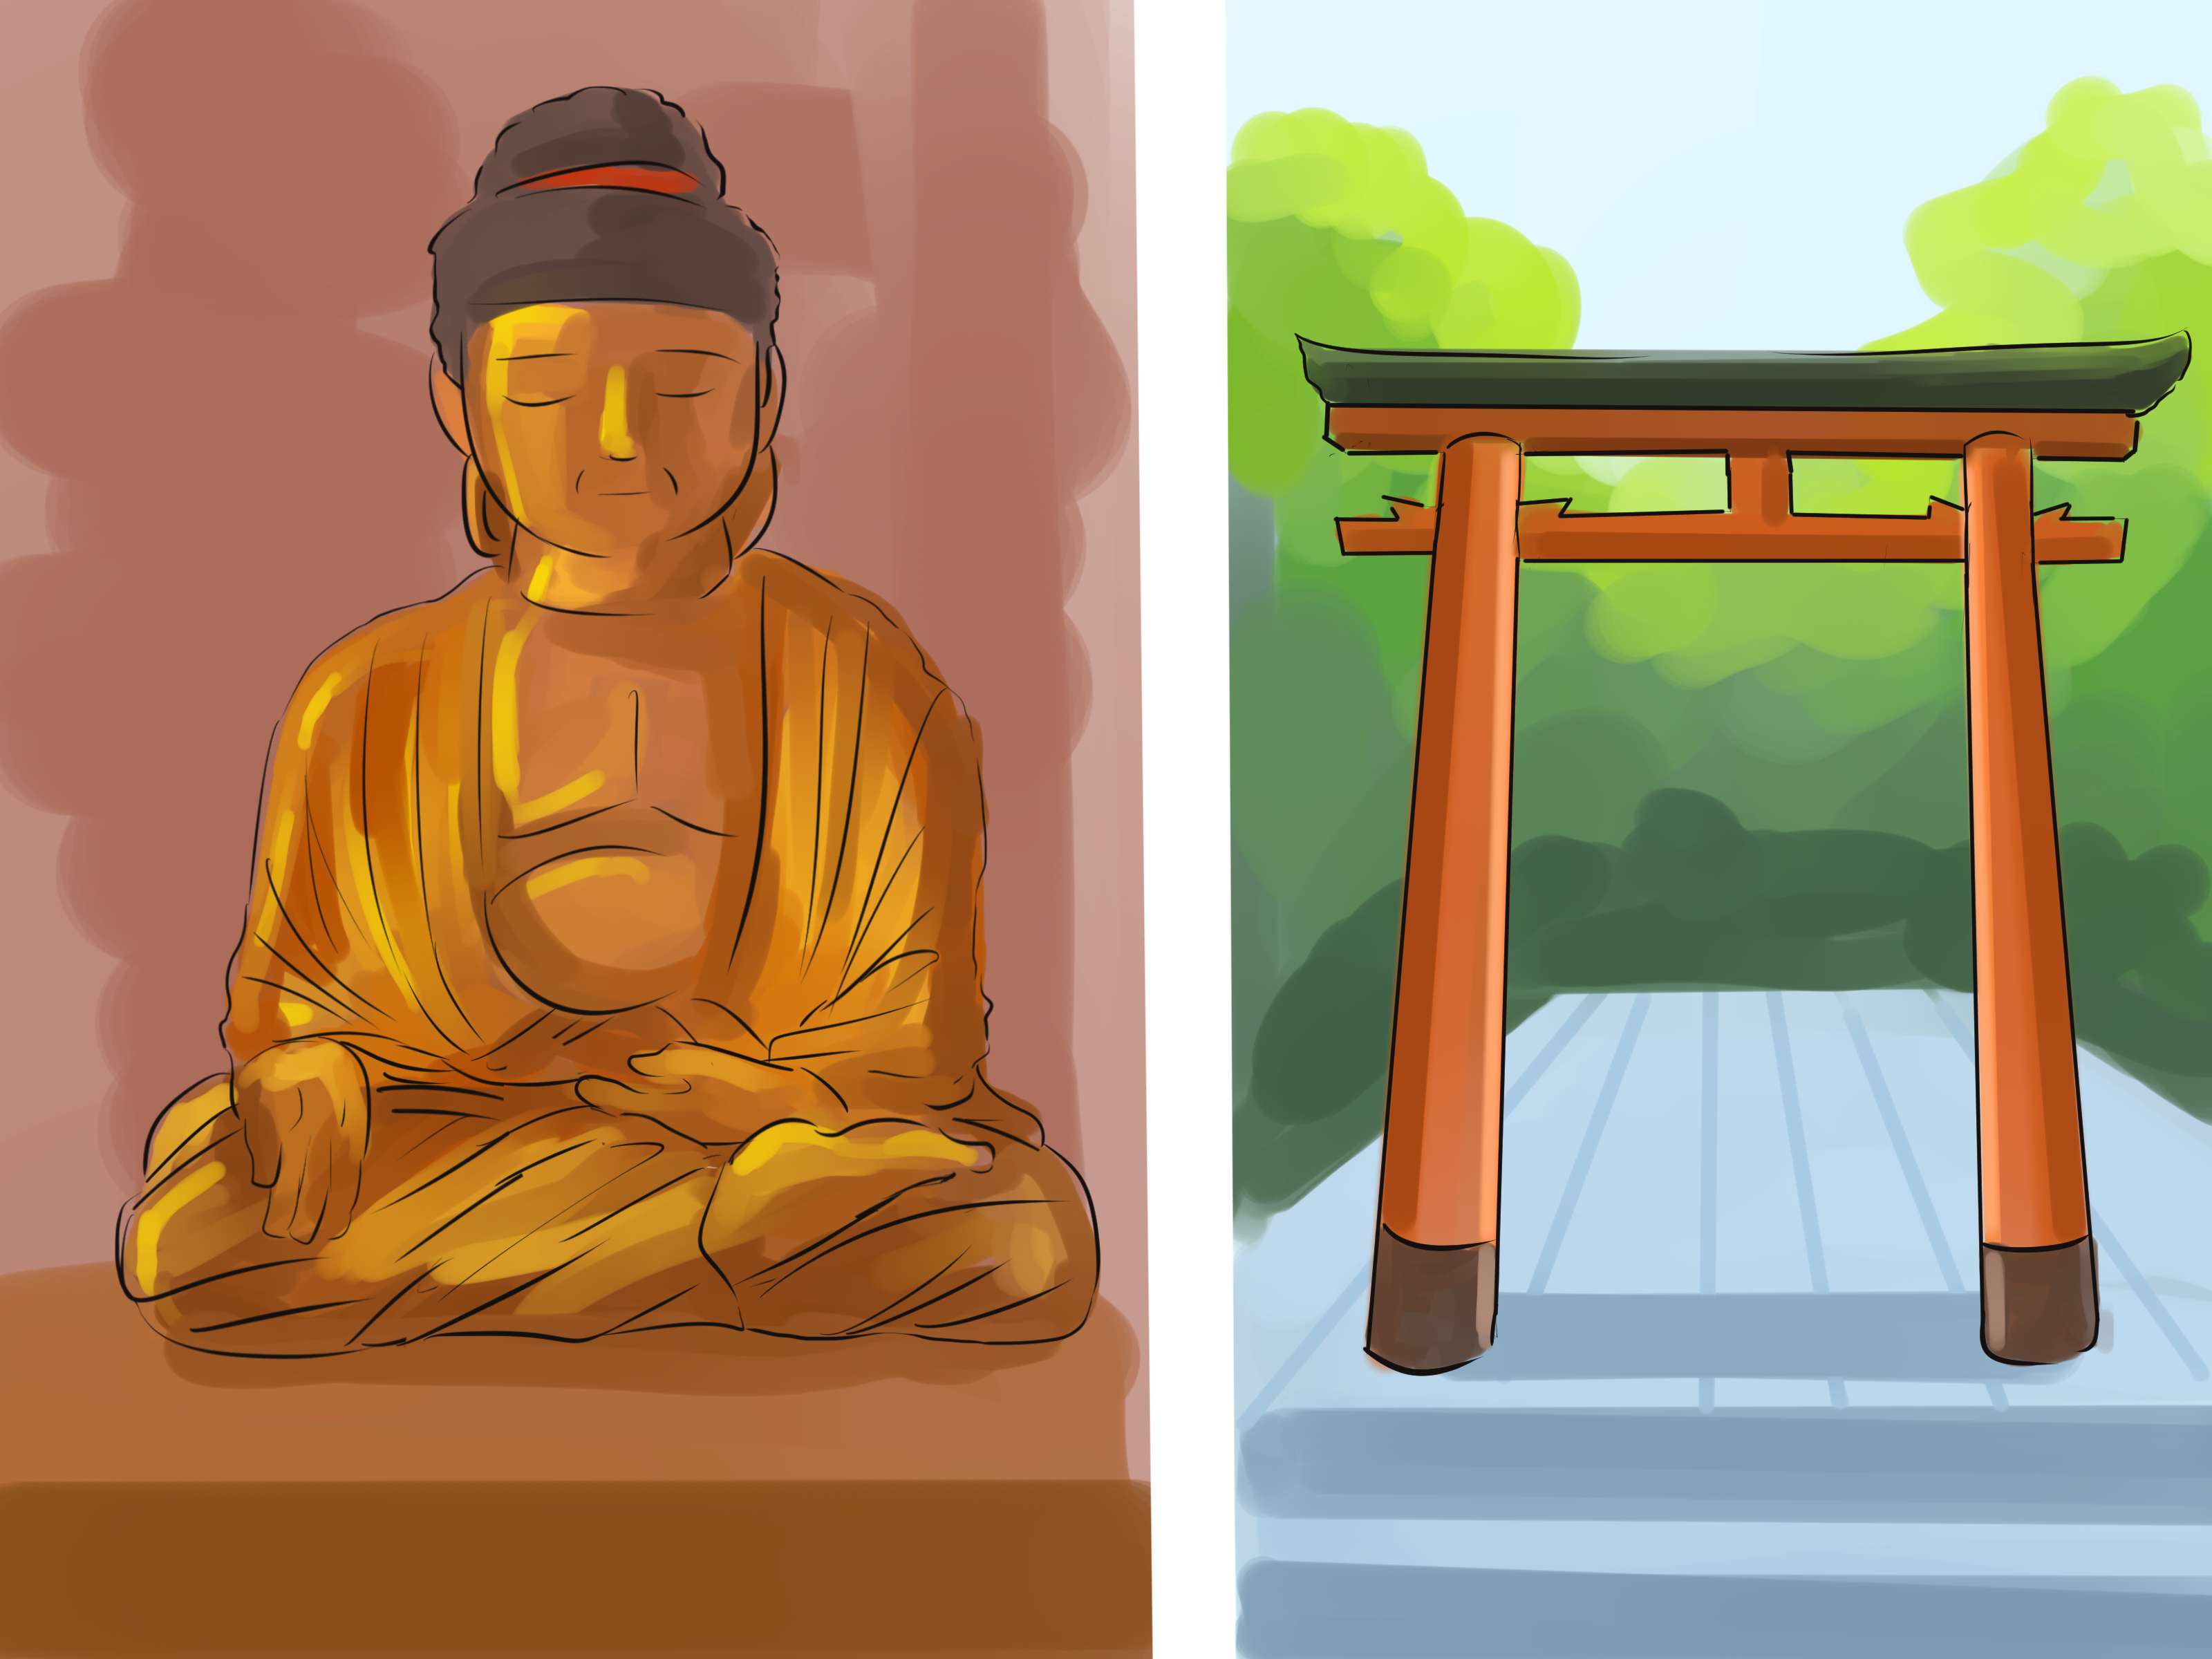 How To Distinguish Between Japanese And Chinese Cultures